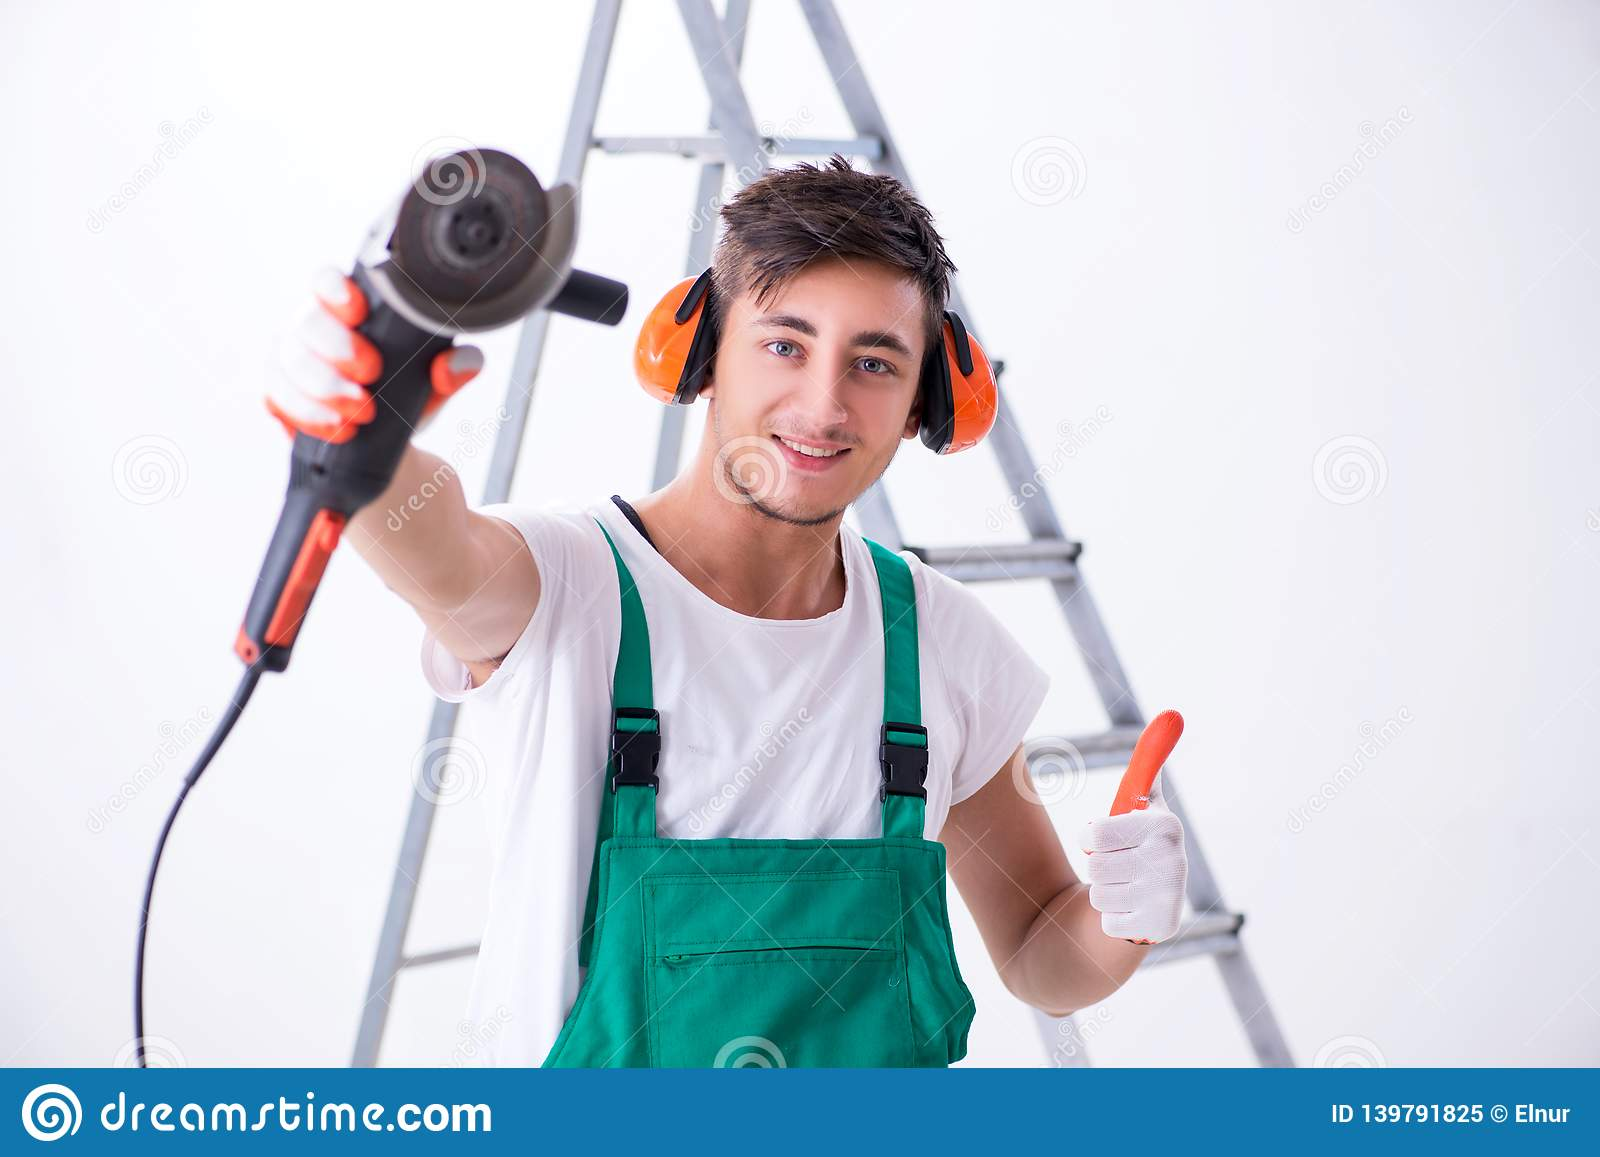 The young worker with earmuffs in noise cancelling concept